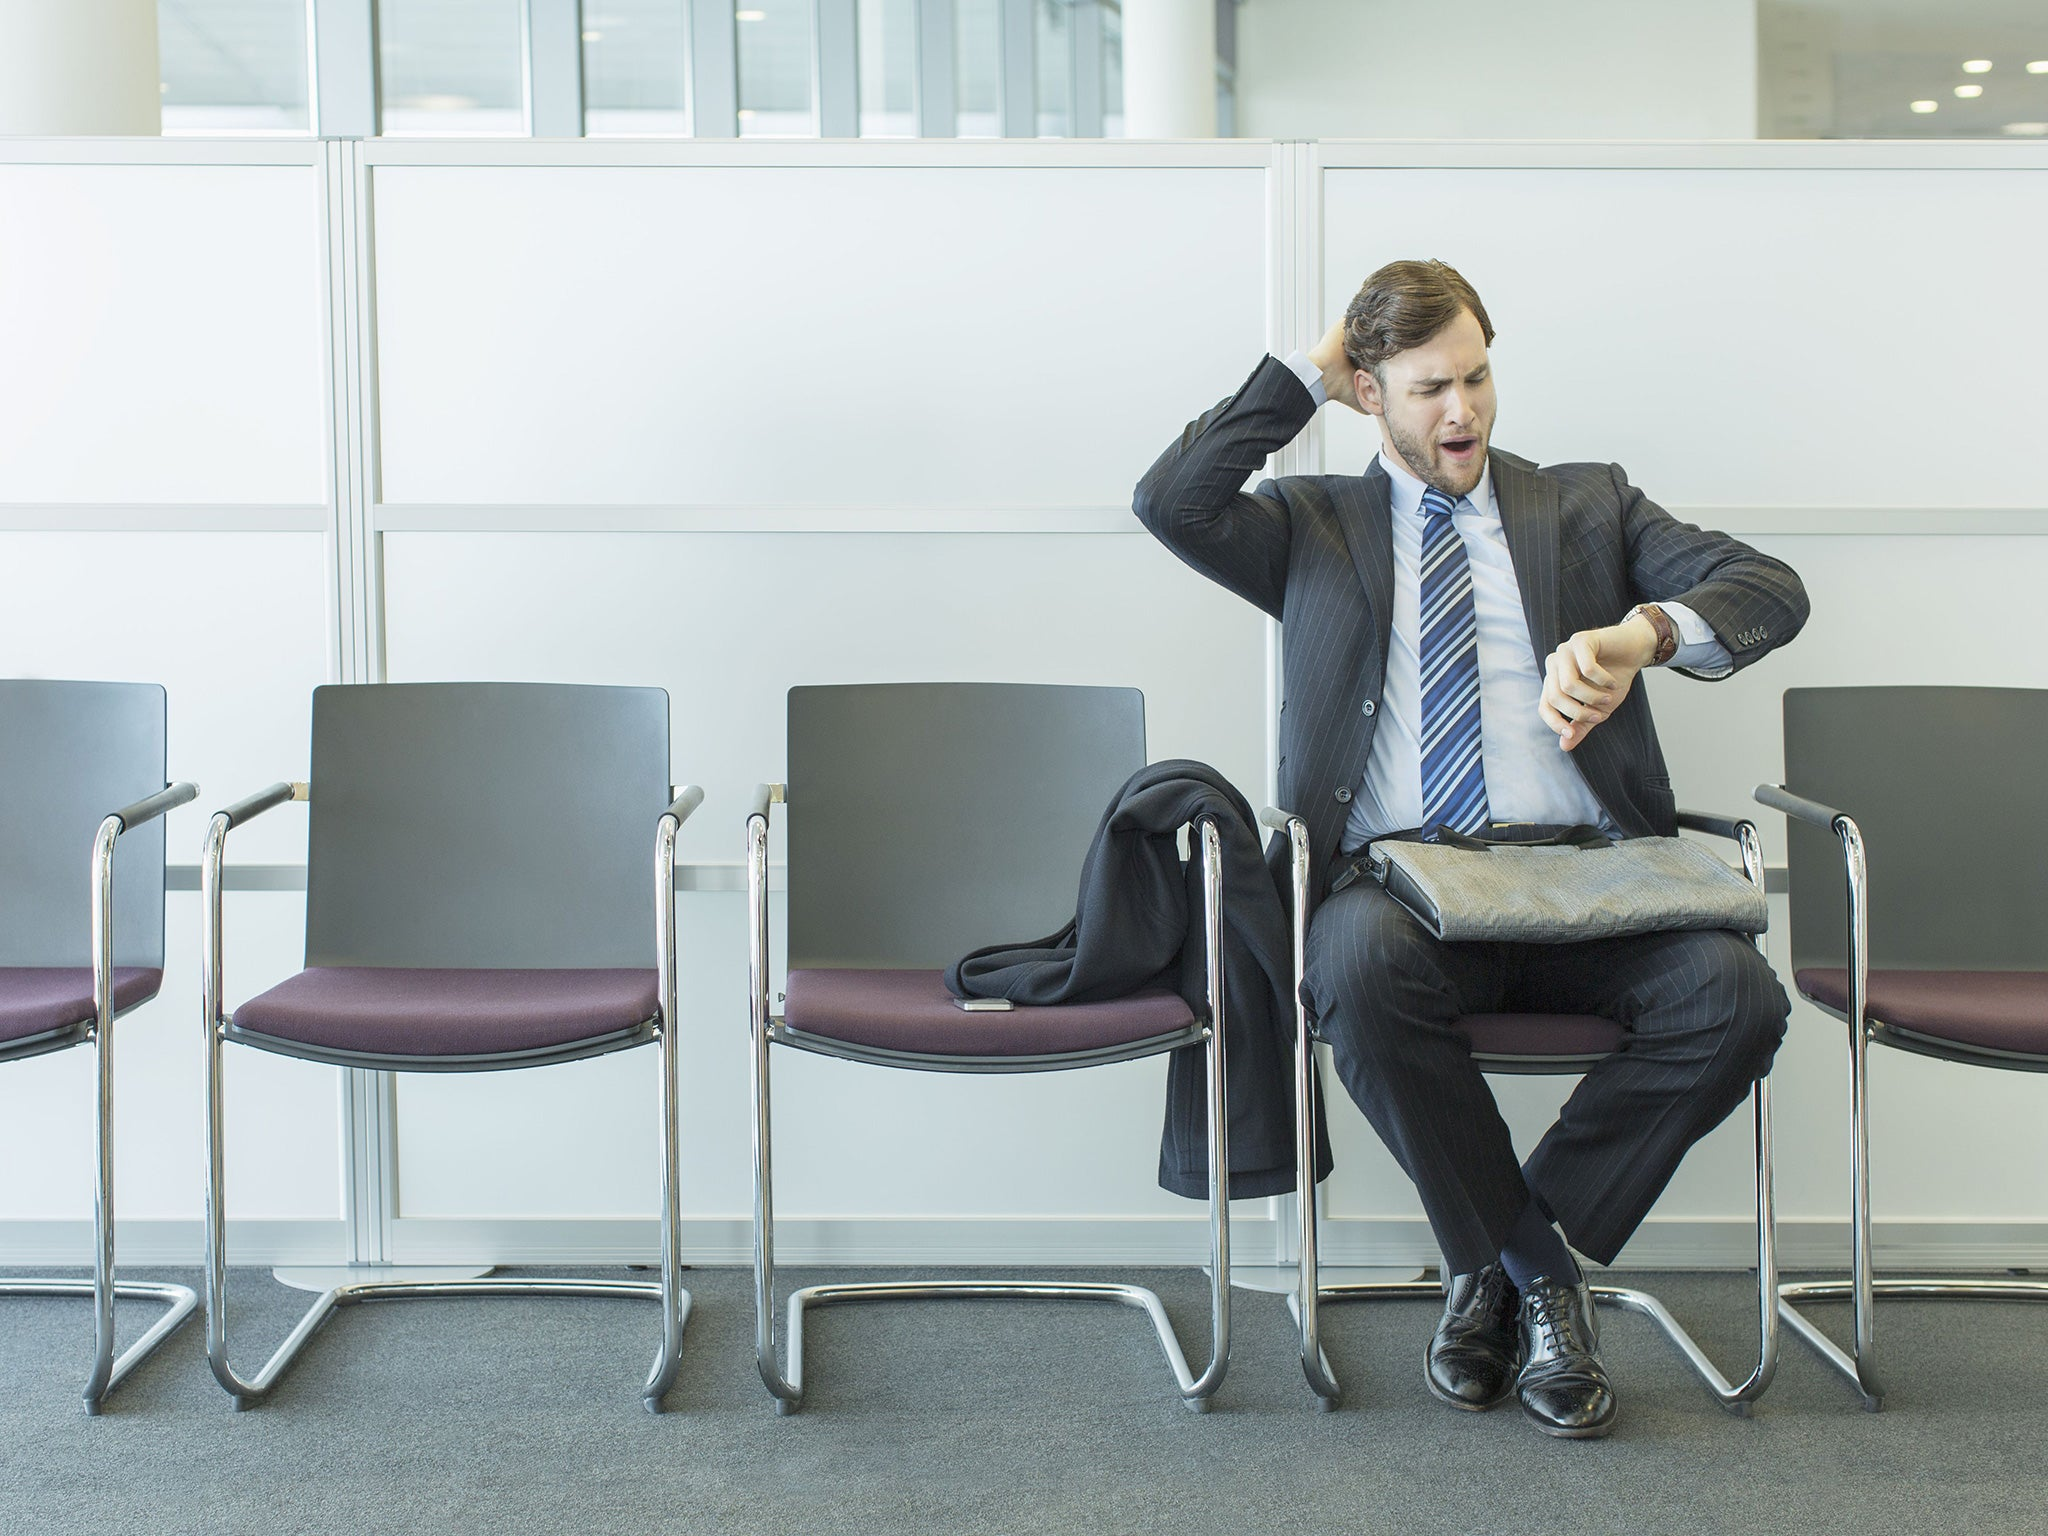 17 signs your job interview is going badly | The Independent